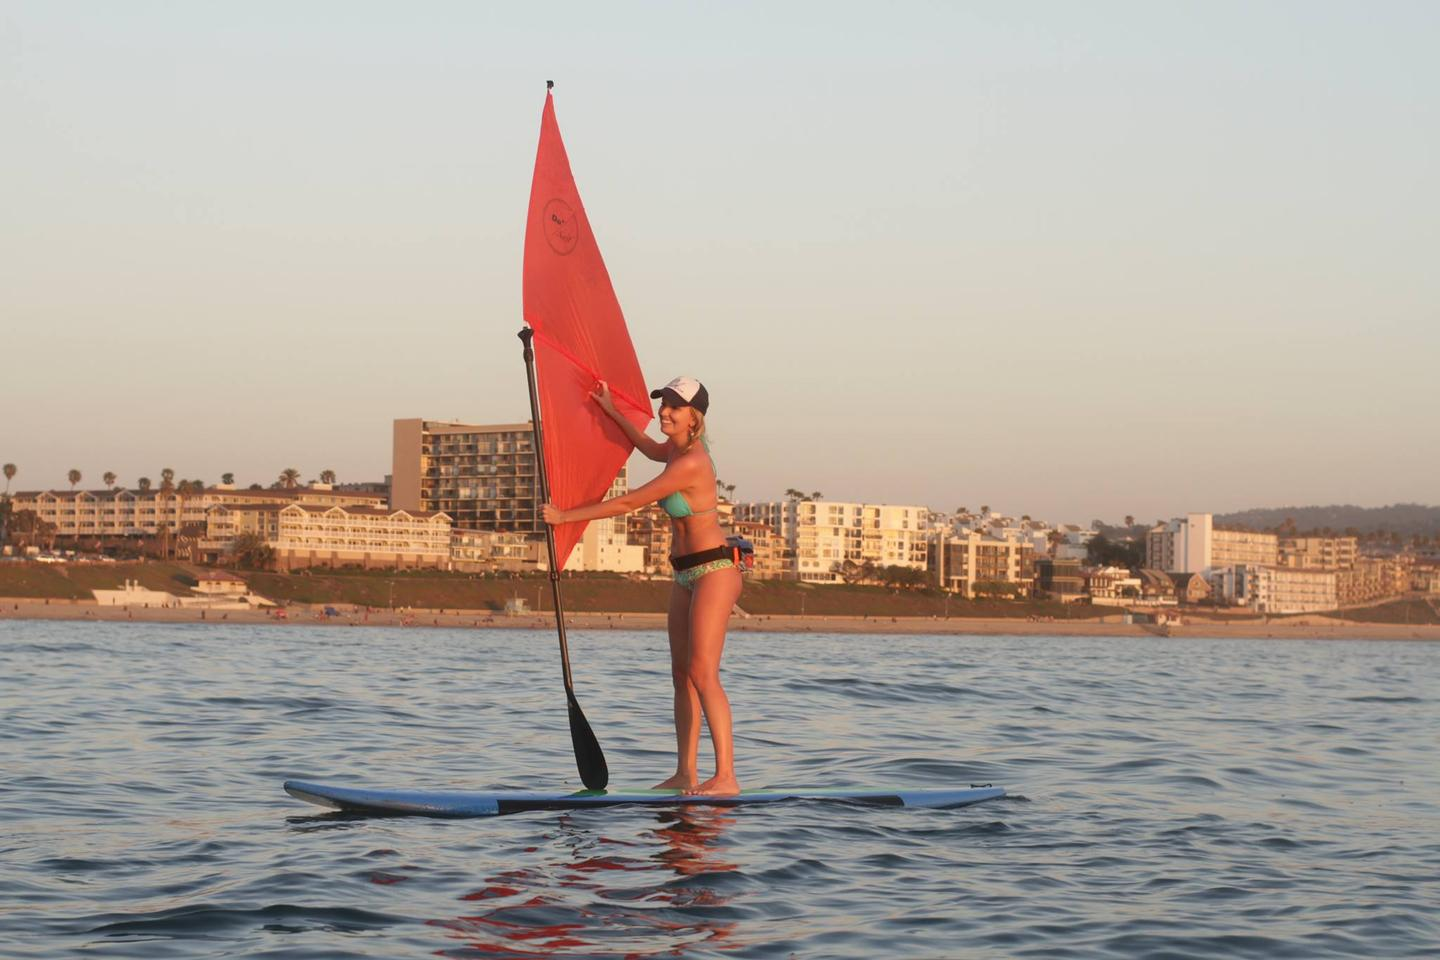 Sailpaddle blends paddleboarding and windsurfing